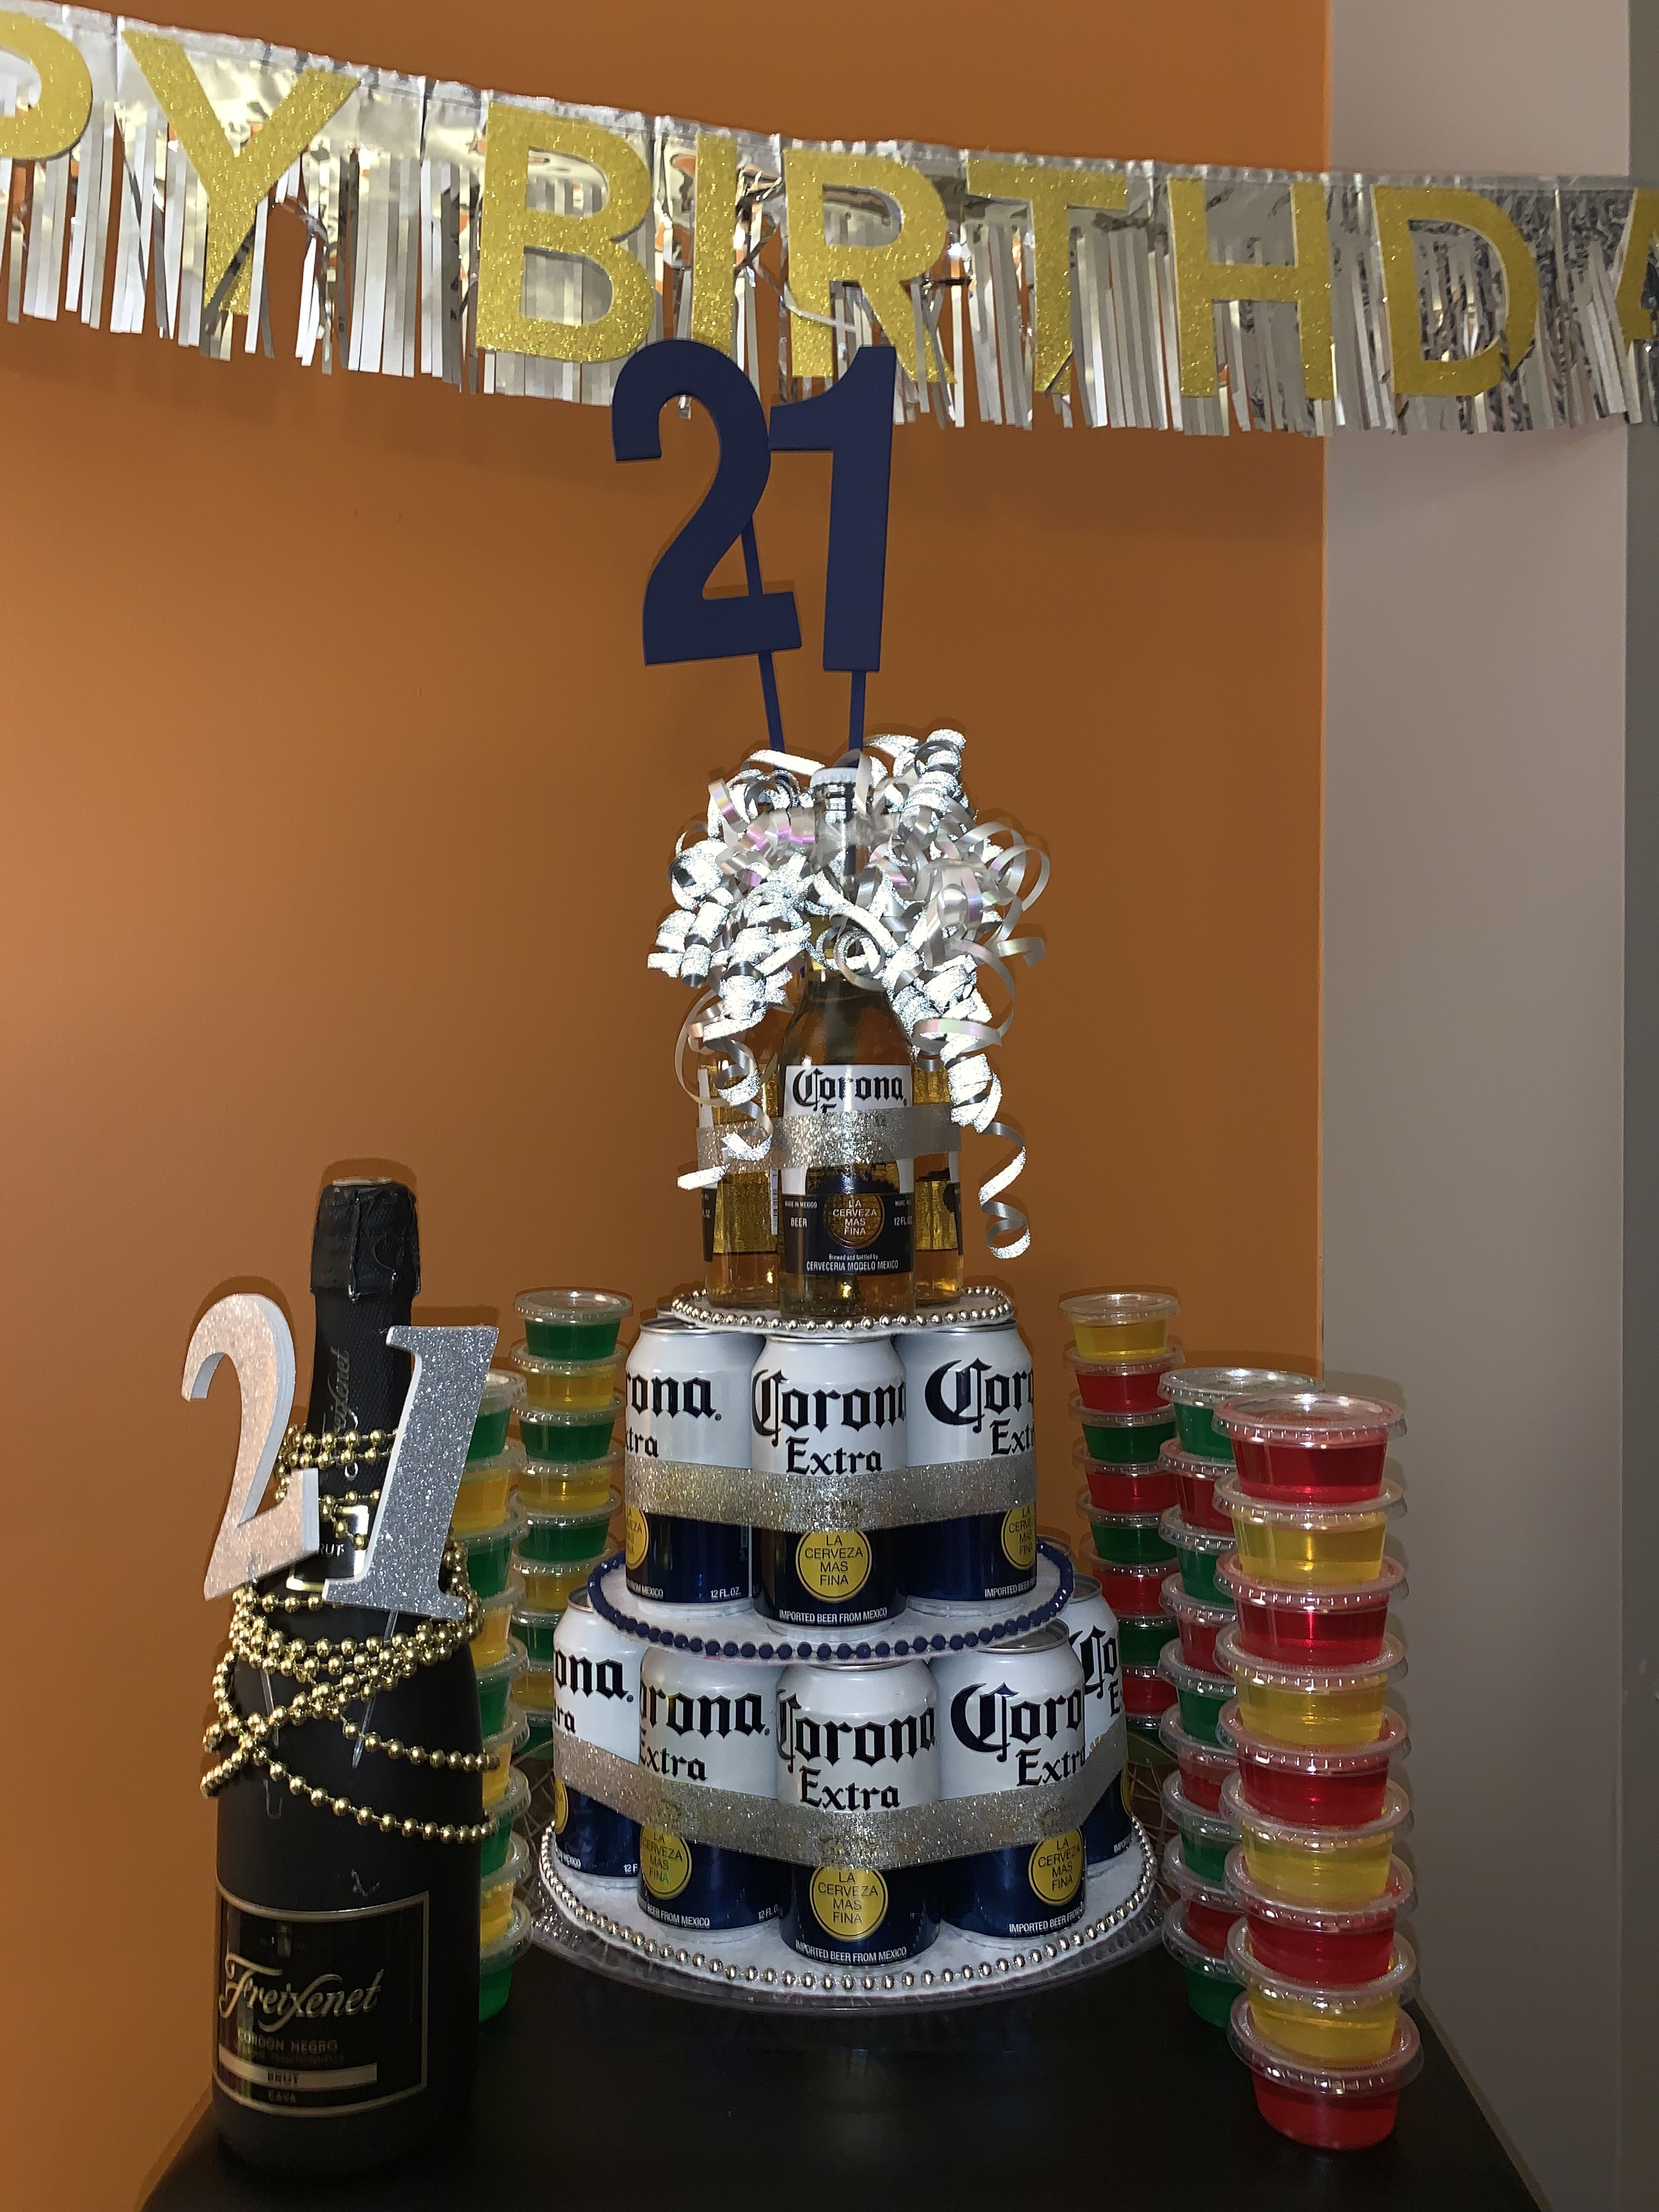 21 Twenty First Birthday Gift Beer Tower Alcohol For Him Beer